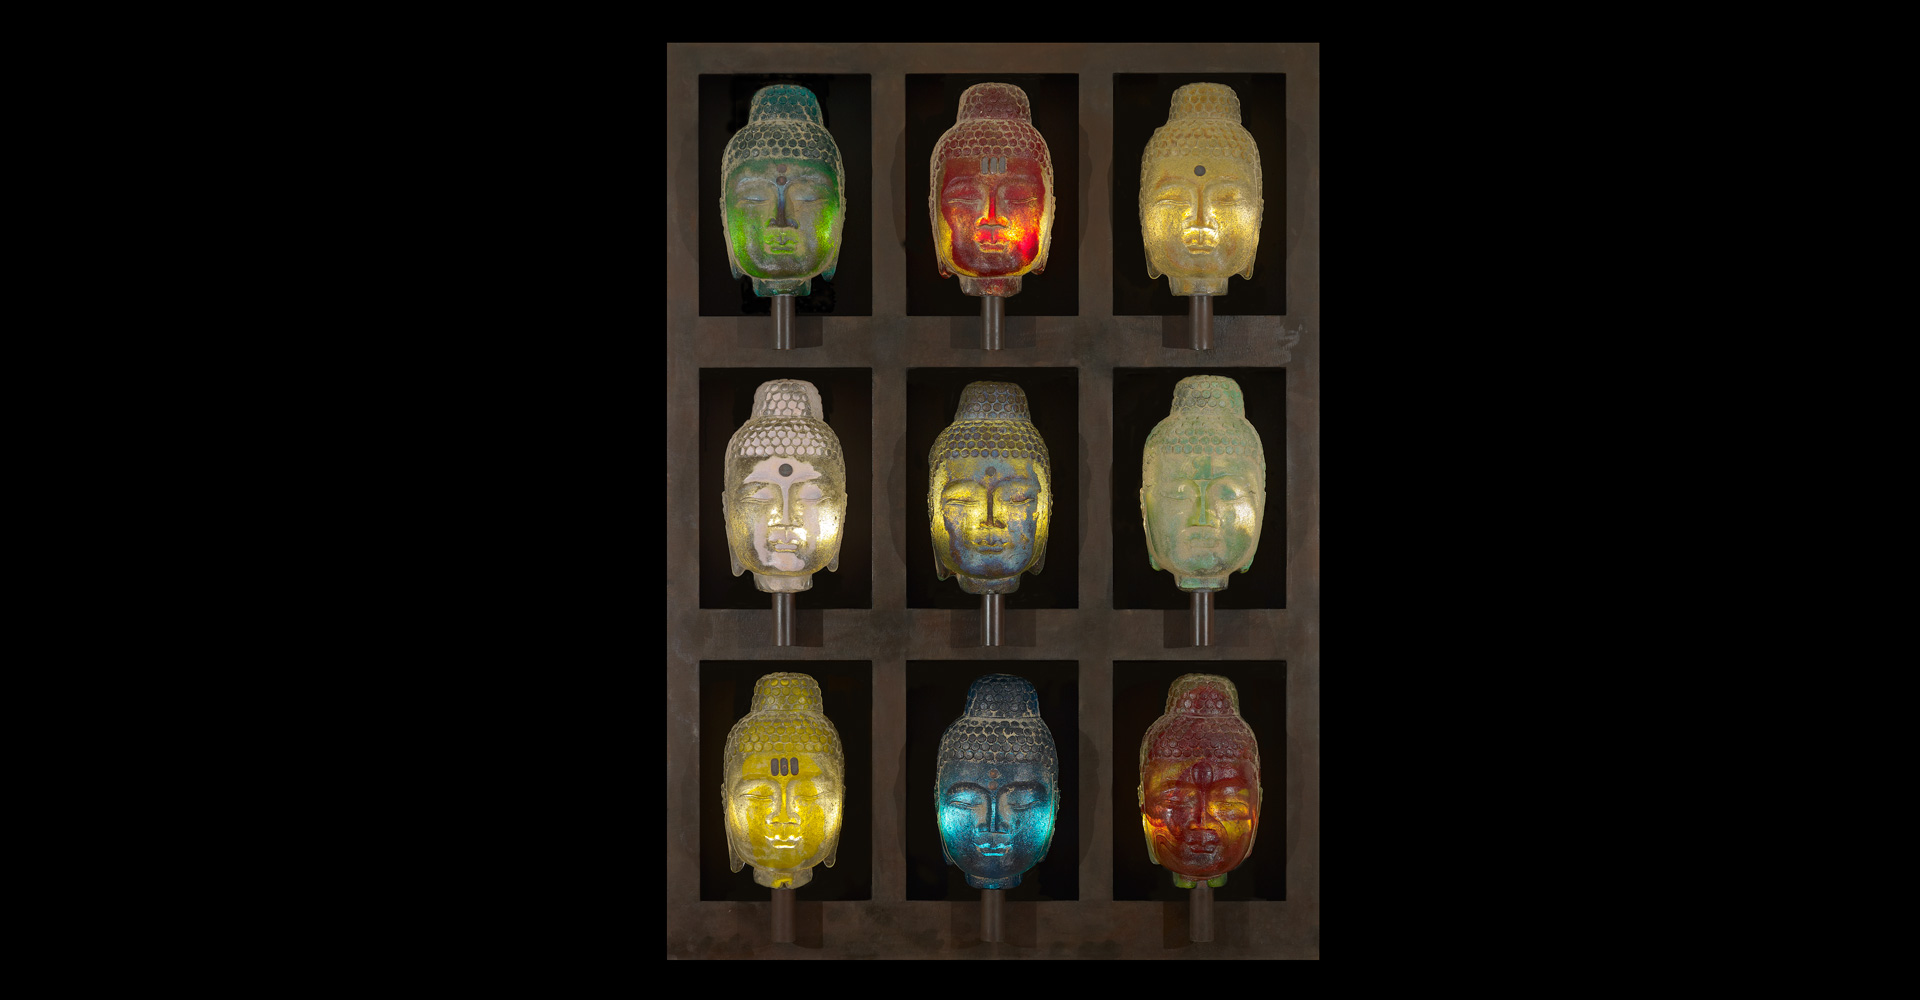 Buddha Wall cast glass art by Marlene Rose